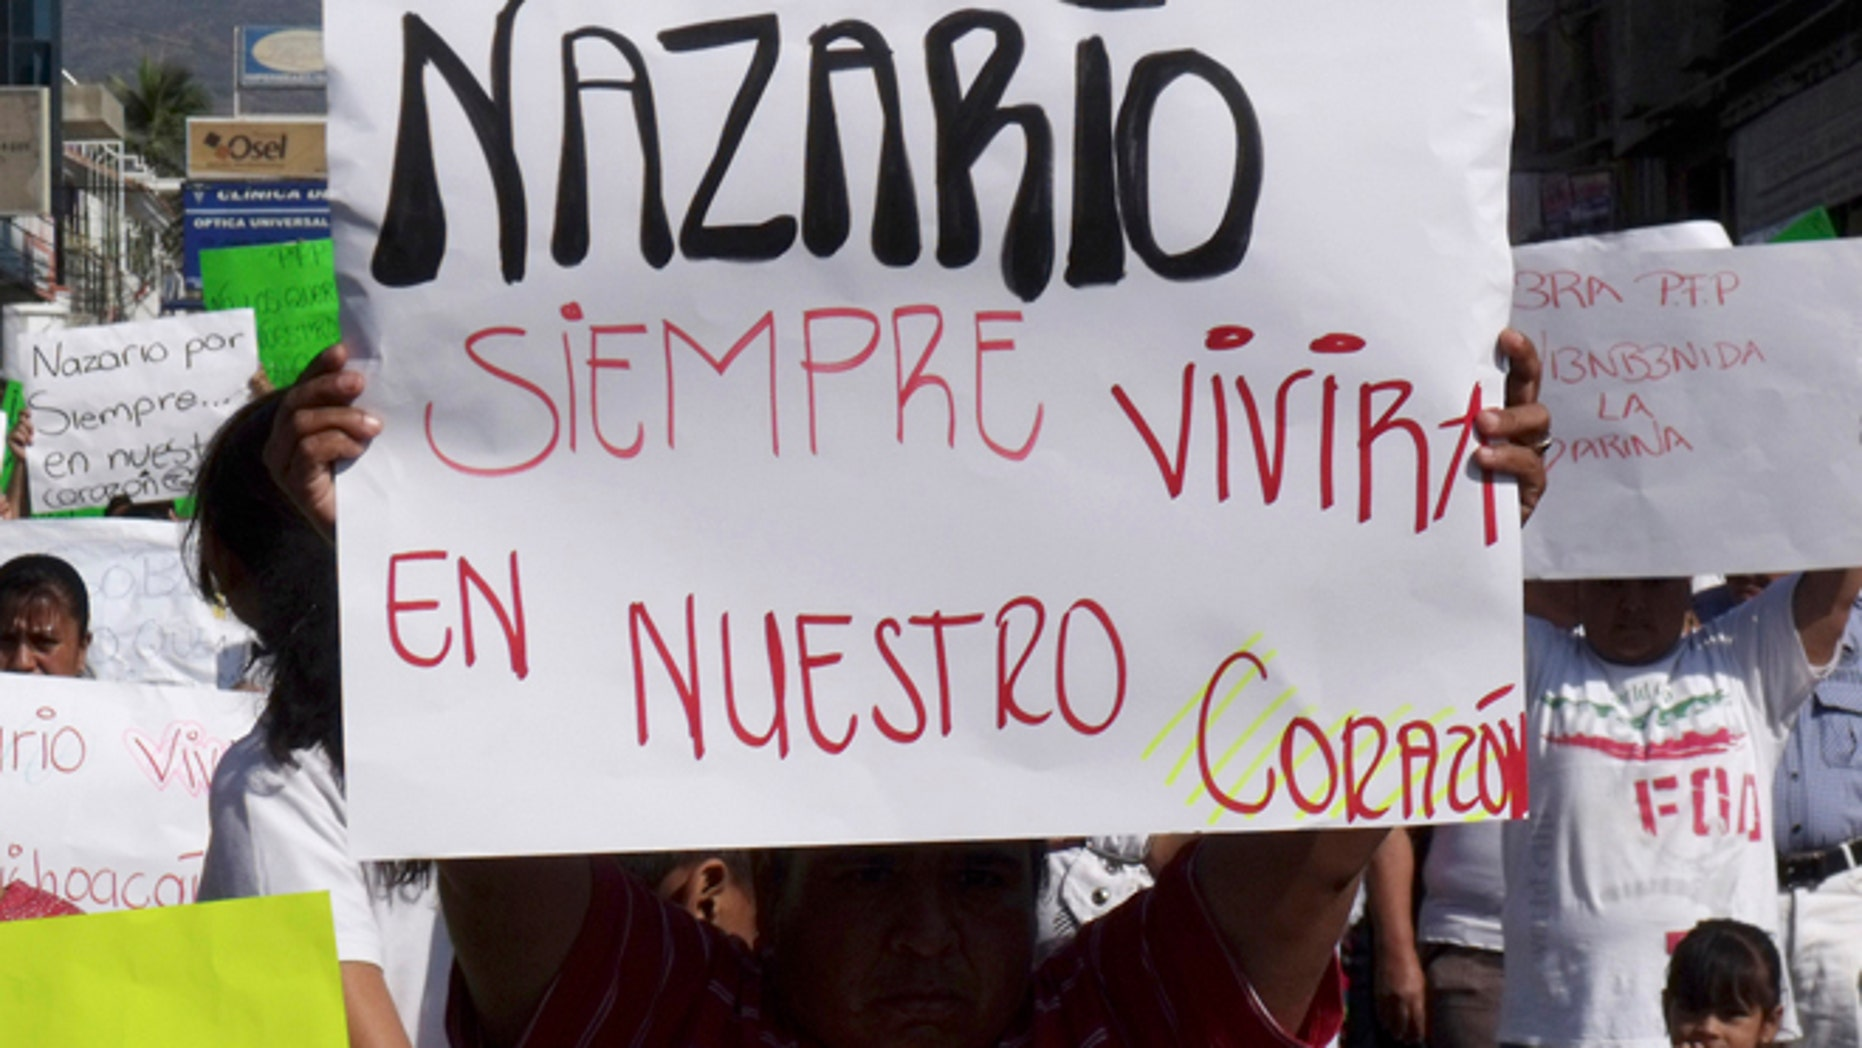 """FILE - In this Dec. 12, 2010 file photo, a man holds a sign that reads in Spanish """"Nazario will always live in our hearts,"""" referring to La Familia drug cartel leader Nazario Moreno Gonzalez during a demonstration after the government announced he was killed in Apatzingan, Mexico. Years later on Sunday, March 9, 2014, officials say they are trying to determine if a man killed in an early morning shootout is Moreno. Some residents of Michoacan have reported seeing Moreno as his former cartel, La Familia Michoacana, was morphing into the more vicious and powerful Knights Templar. (AP Photo/Primera Plana, File)"""